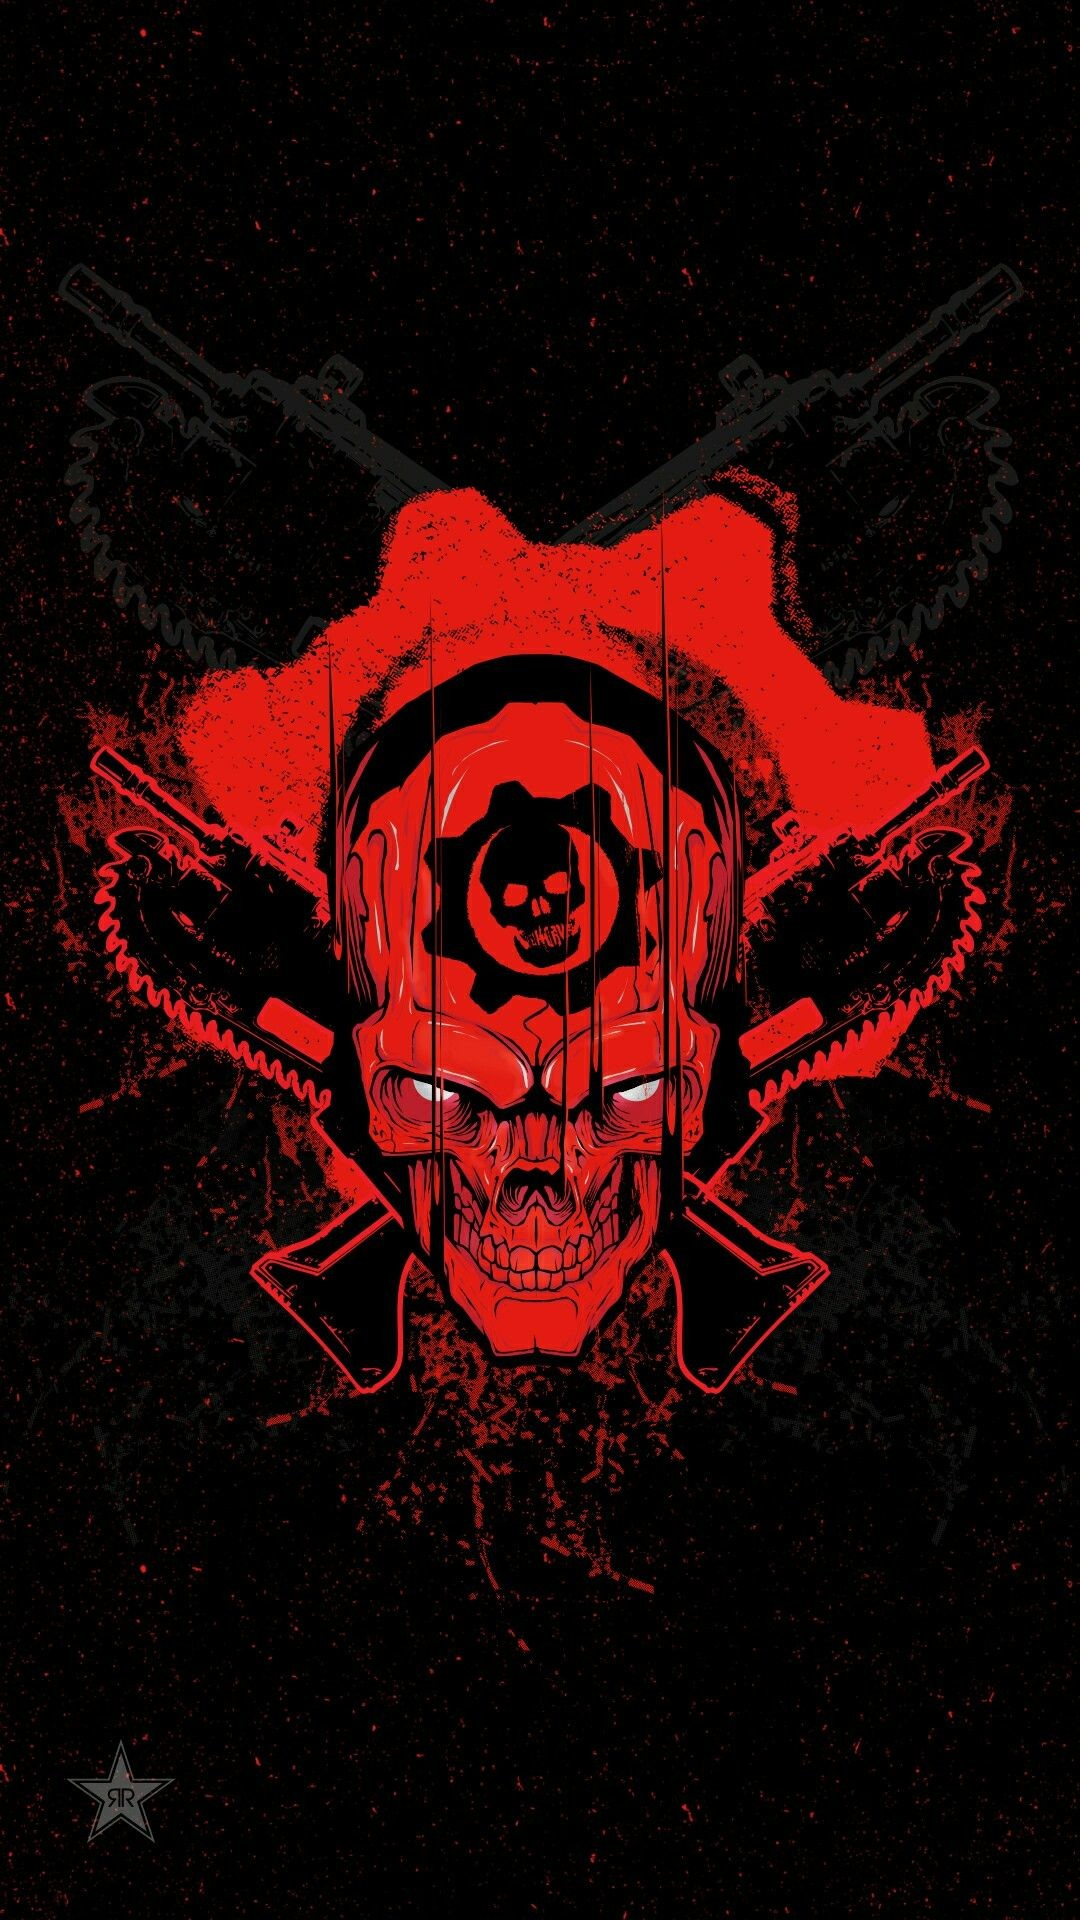 Res: 1080x1920, Hydro74 Gears of War Rockstar Energy Drink